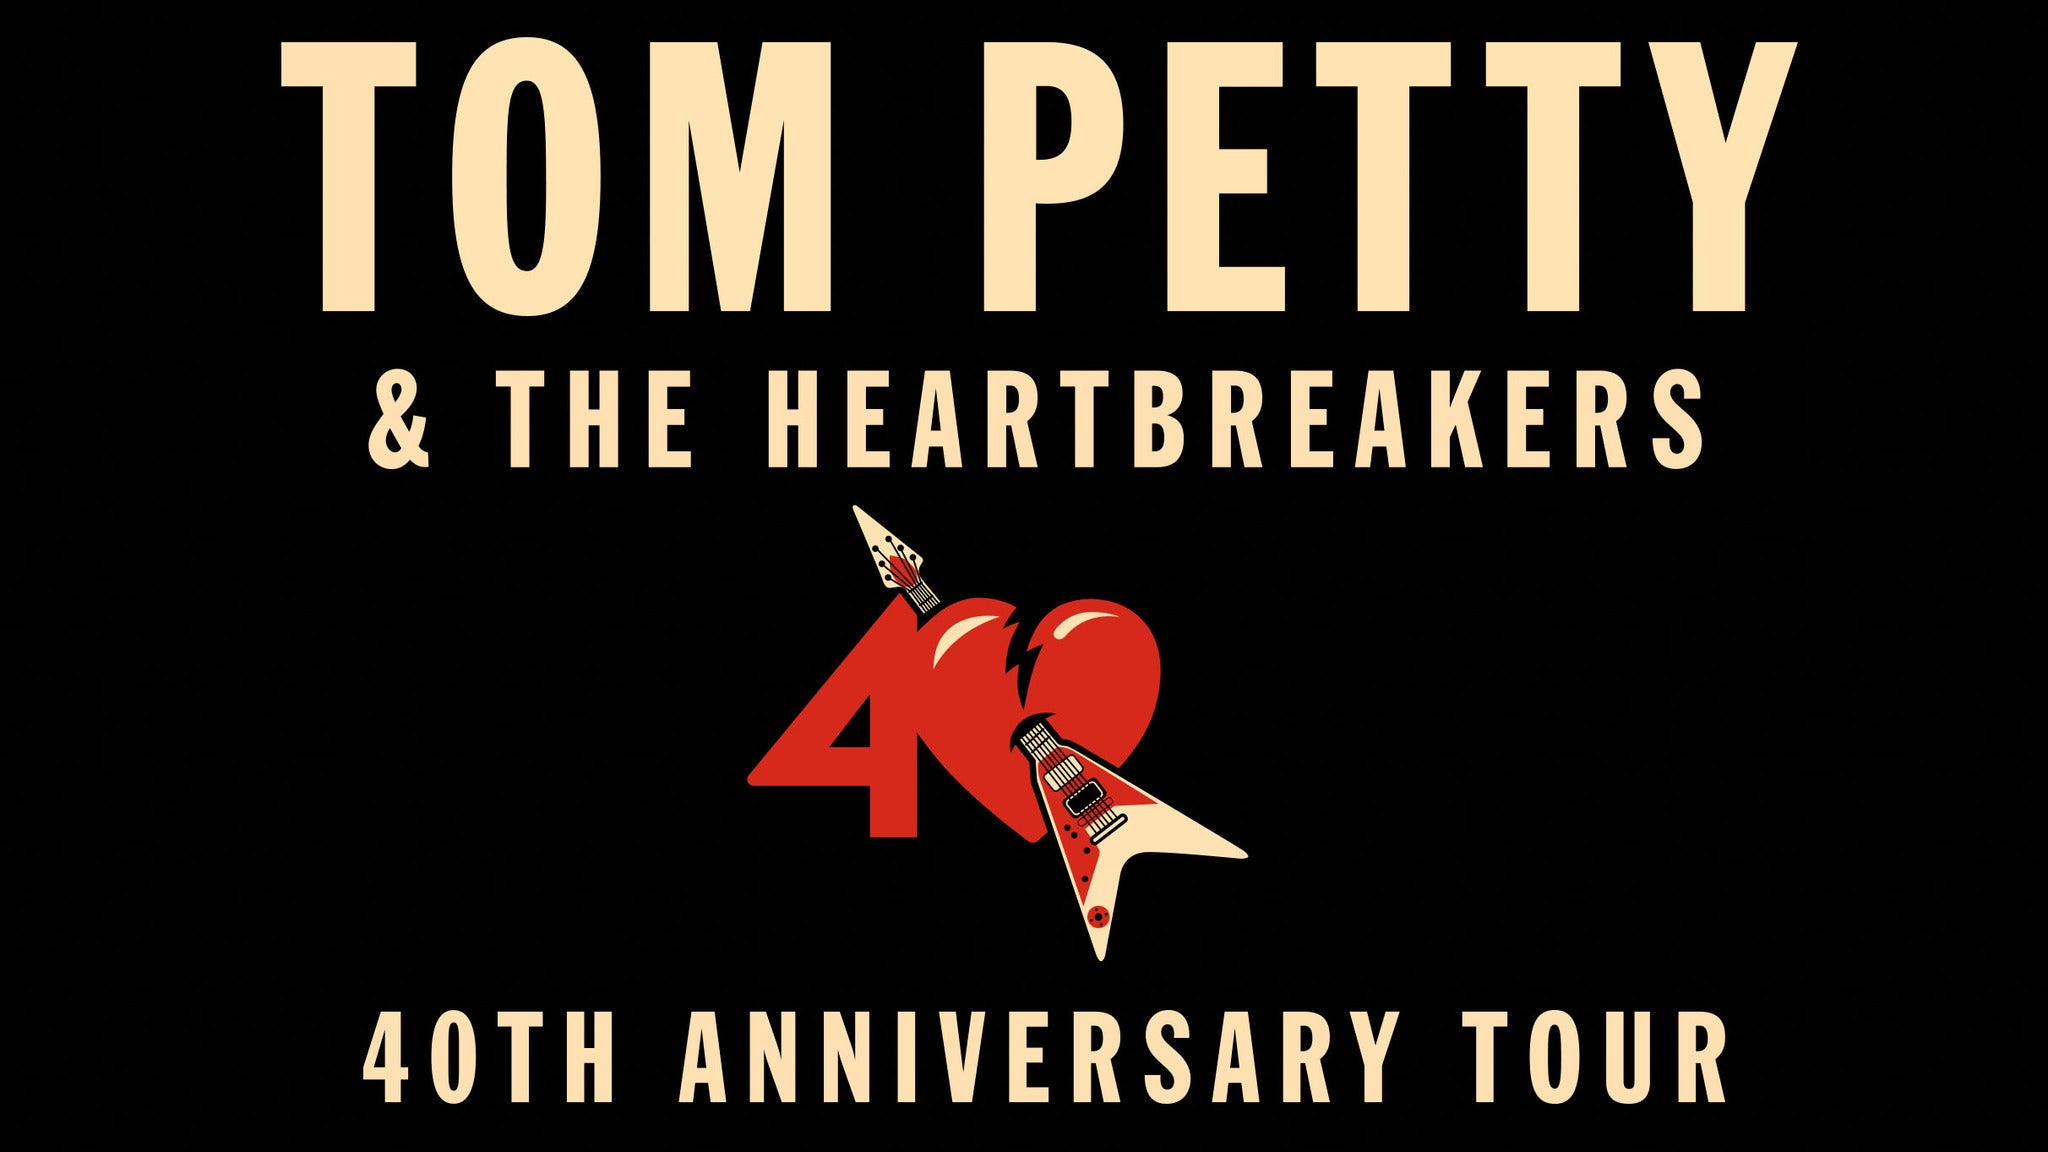 Tom Petty & The Heartbreakers at Wells Fargo Arena